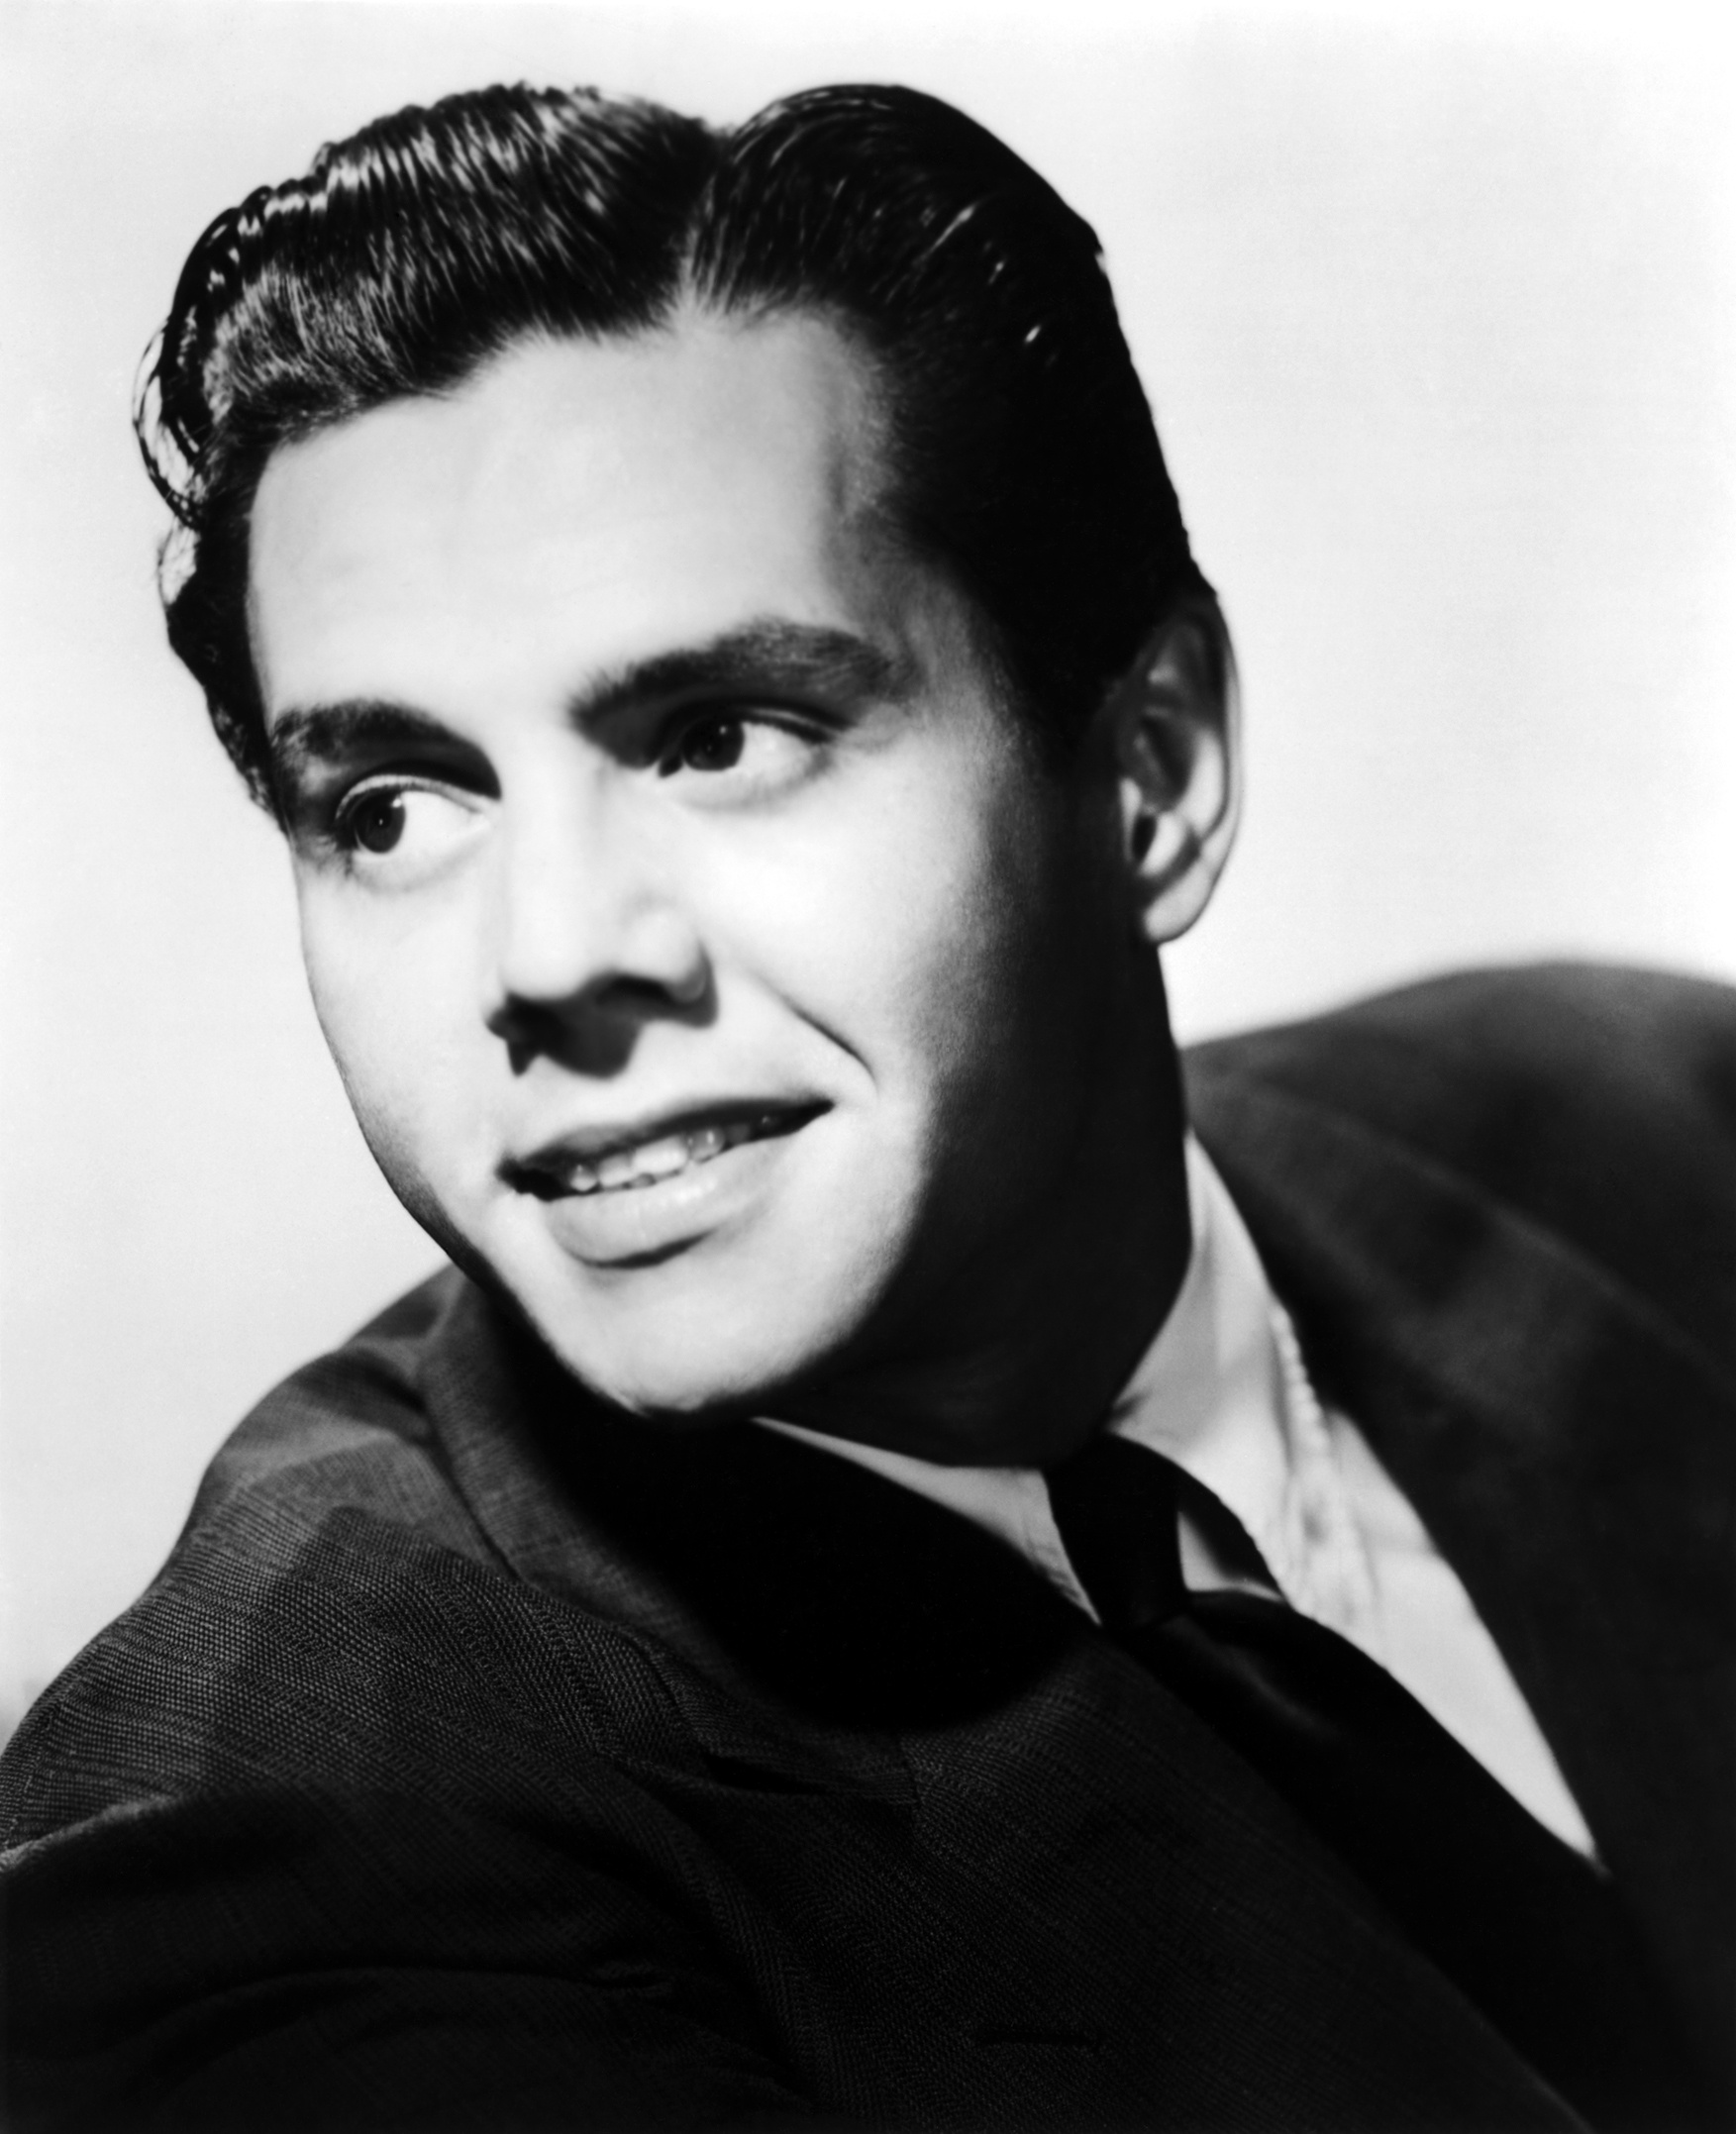 desi arnaz jrdesi arnaz similau, desi arnaz pronunciation, desi arnaz and edith mack hirsch, desi arnaz cuban pete, desi arnaz jr, desi arnaz a book pdf, desi arnaz tumblr, desi arnaz letter to lucille ball, desi arnaz the book, desi arnaz, desi arnaz junior, desi arnaz biography, desi arnaz wiki, desi arnaz second wife, desi arnaz orchestra, desi arnaz net worth, desi arnaz last words, desi arnaz jr and patty duke, desi arnaz jr daughter julia, desi arnaz funeral